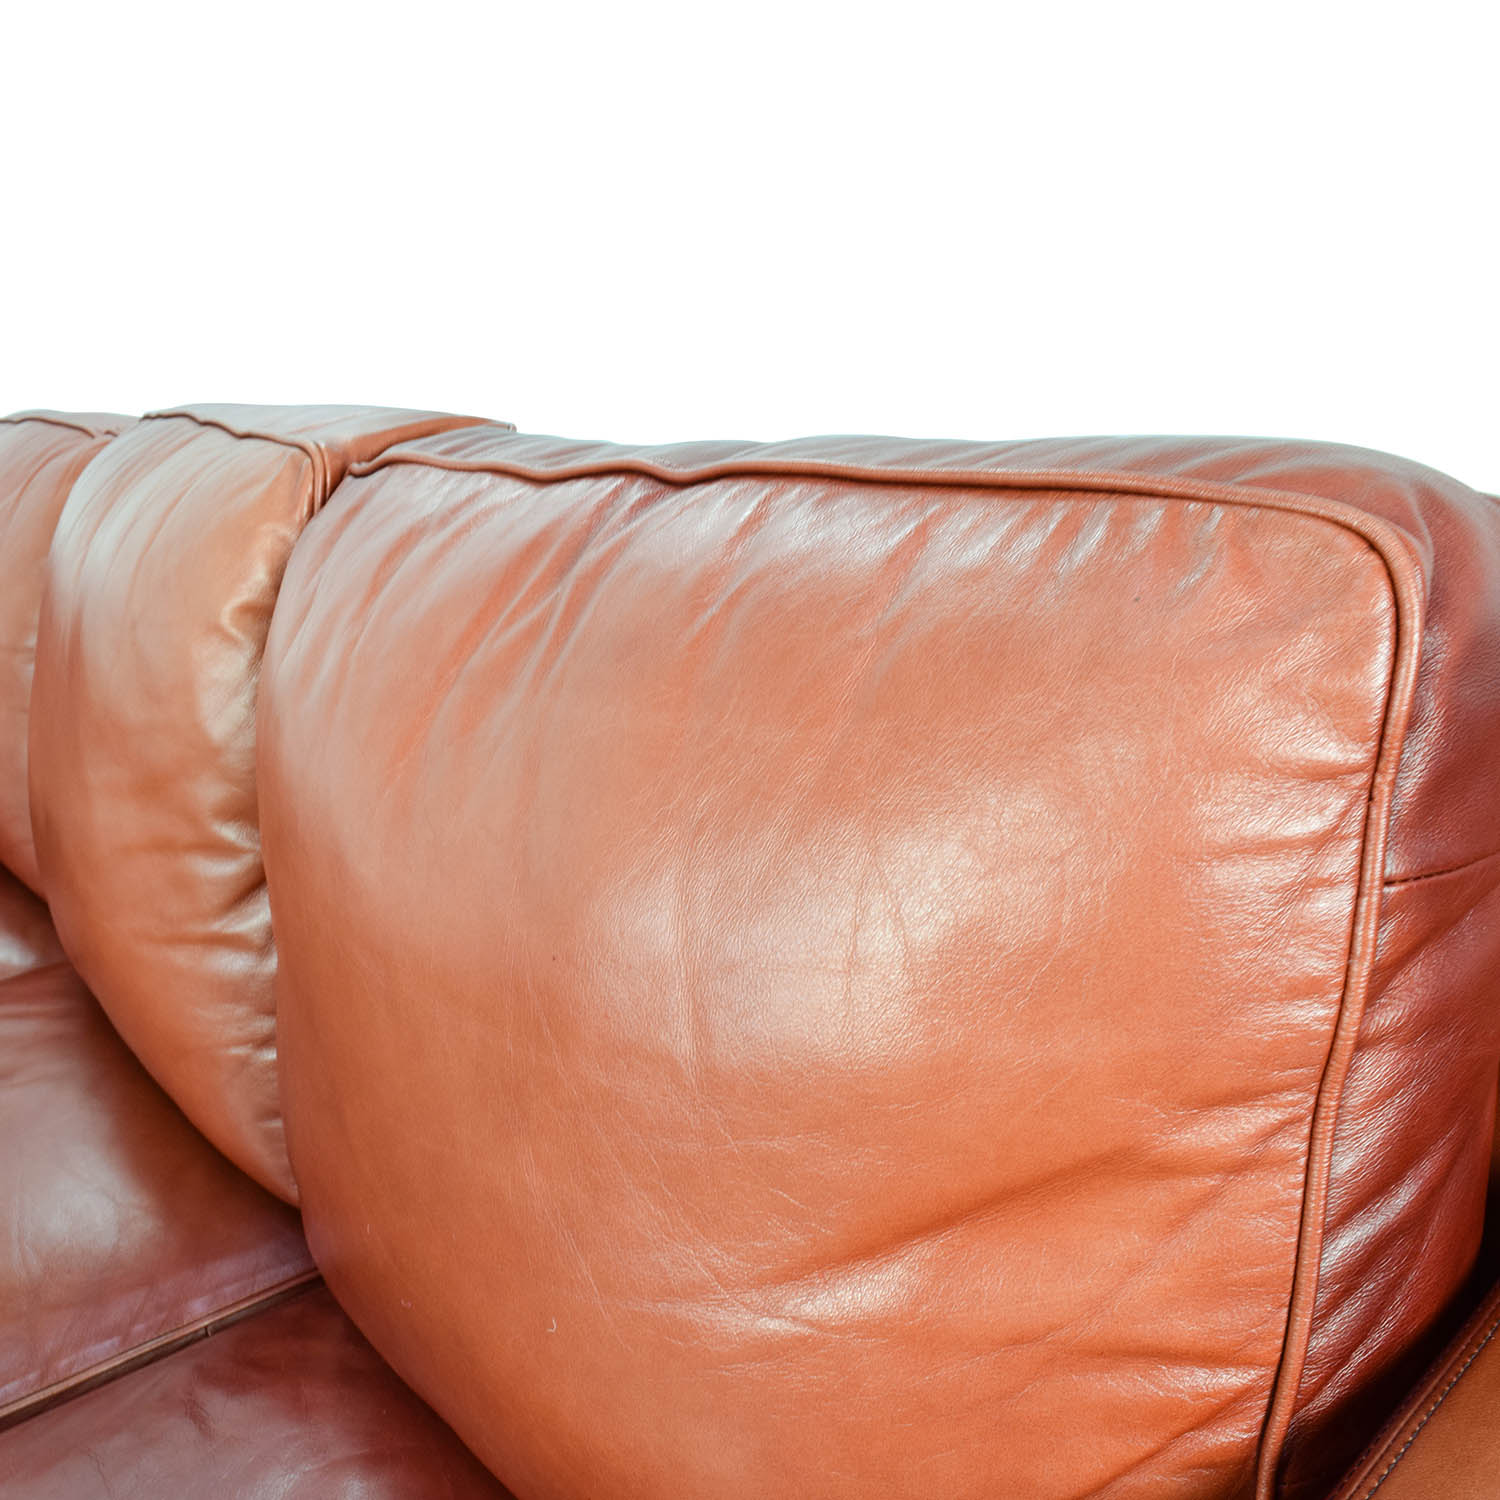 68% OFF Thomasville Thomasville Red Leather Sectional Sofas